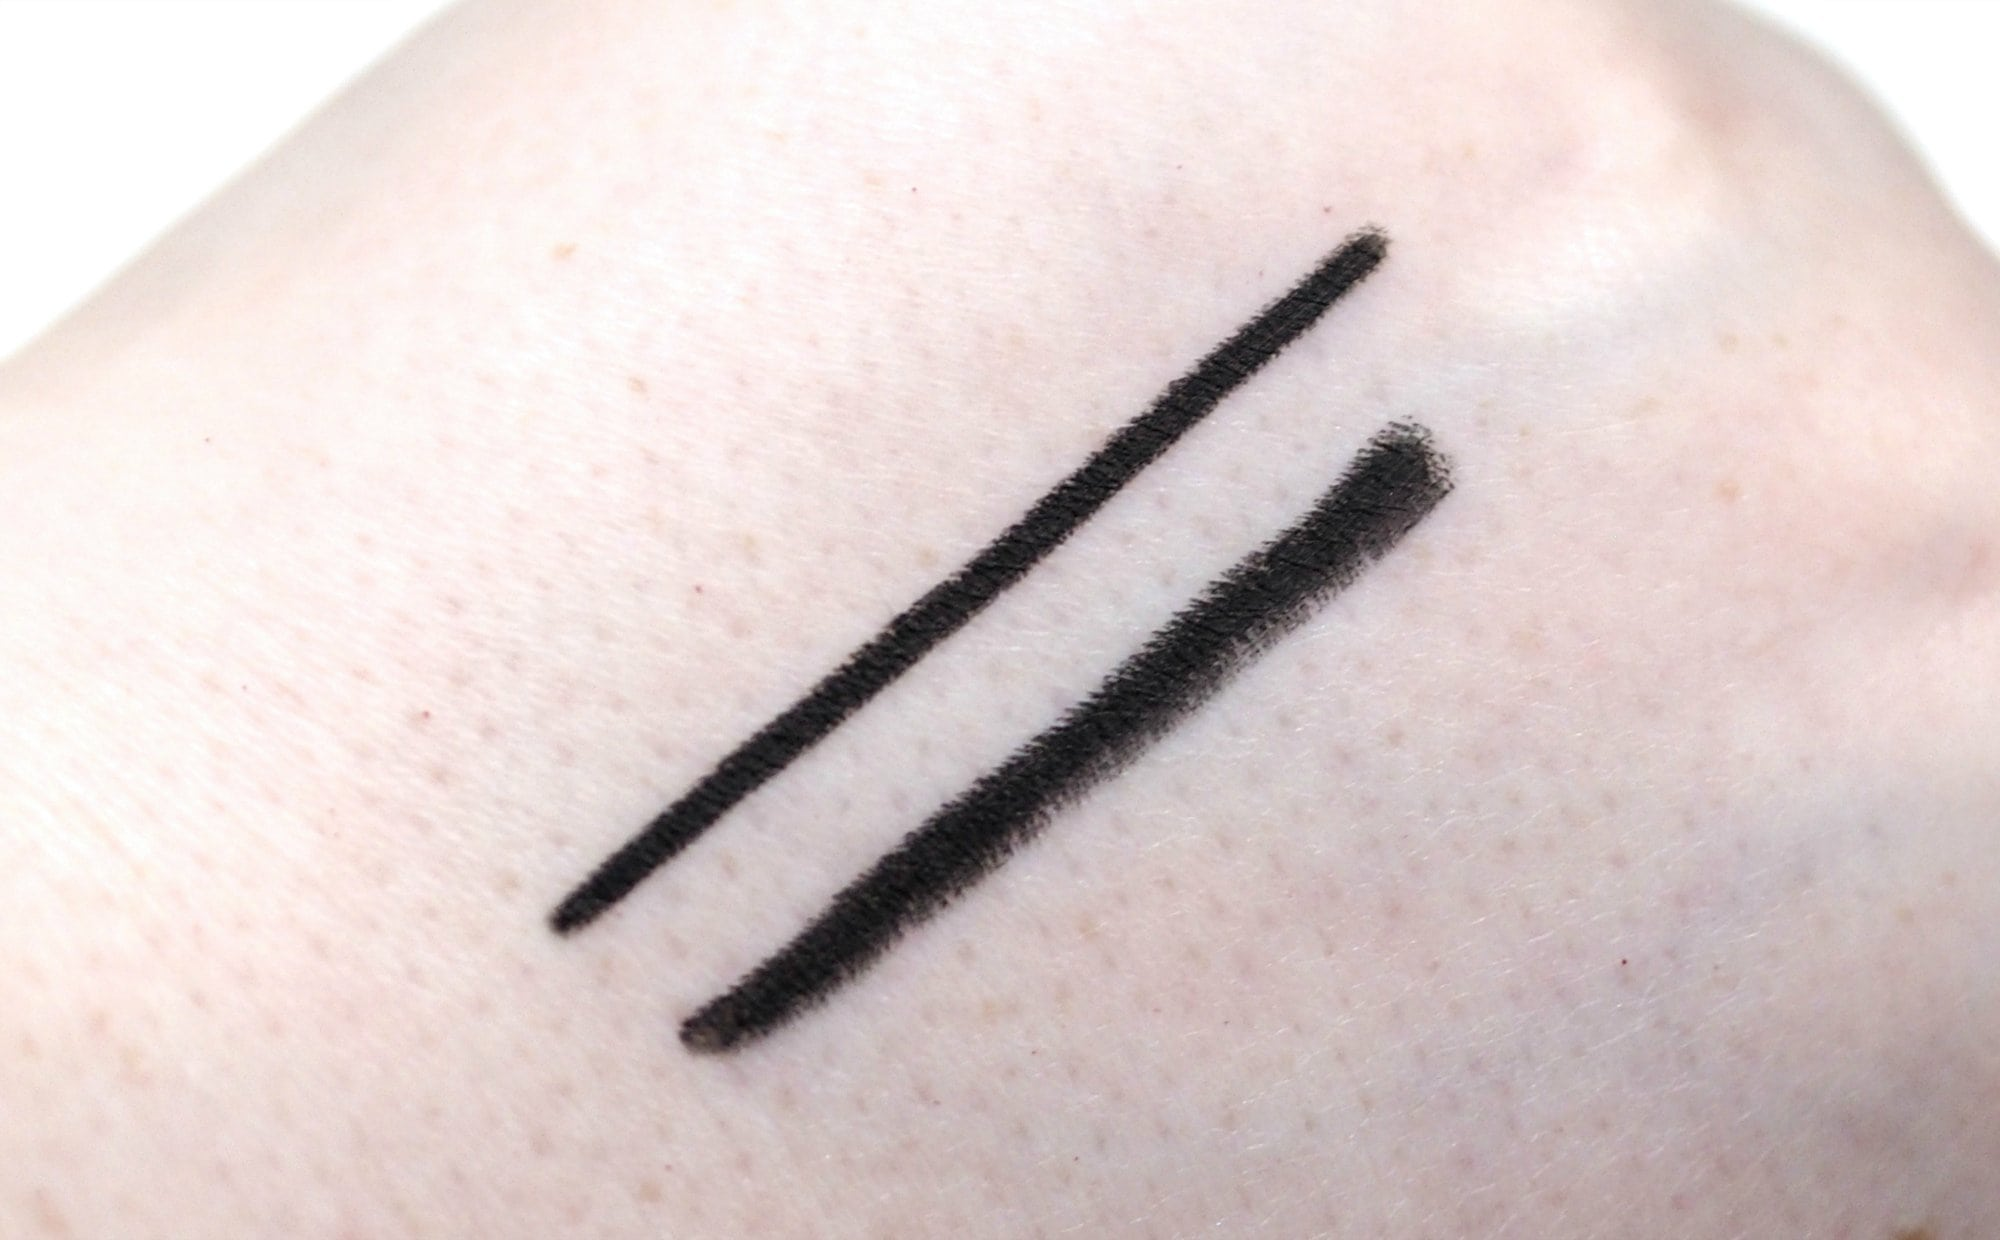 Maybelline Tattoo Liner Gel Pencil Review and Swatches in Deep Onyx